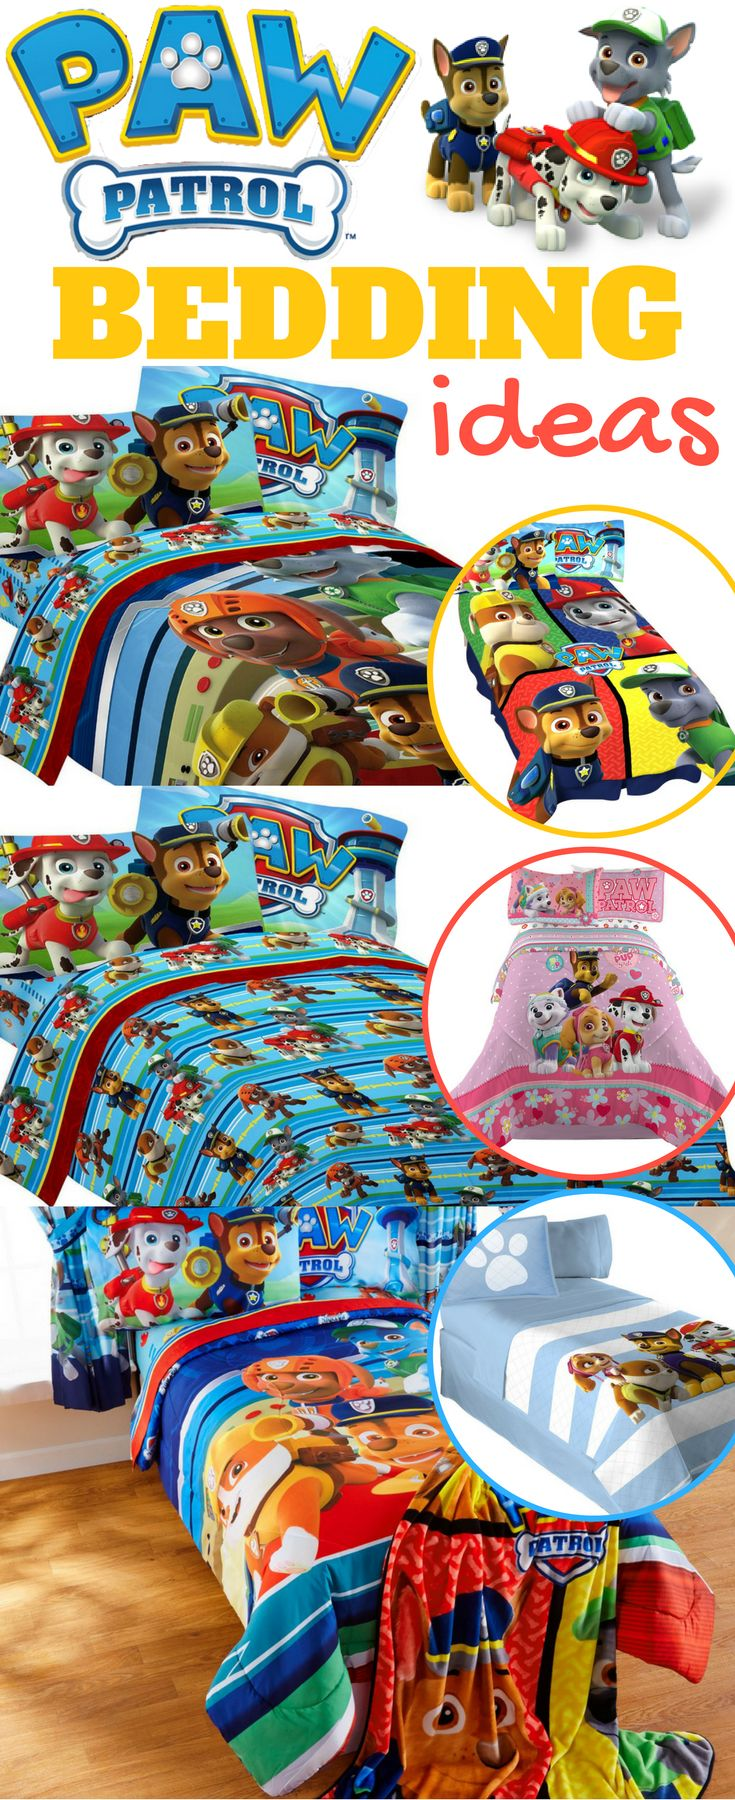 17 best Paw Patrol images on Pinterest | Paw patrol, Canada and ...